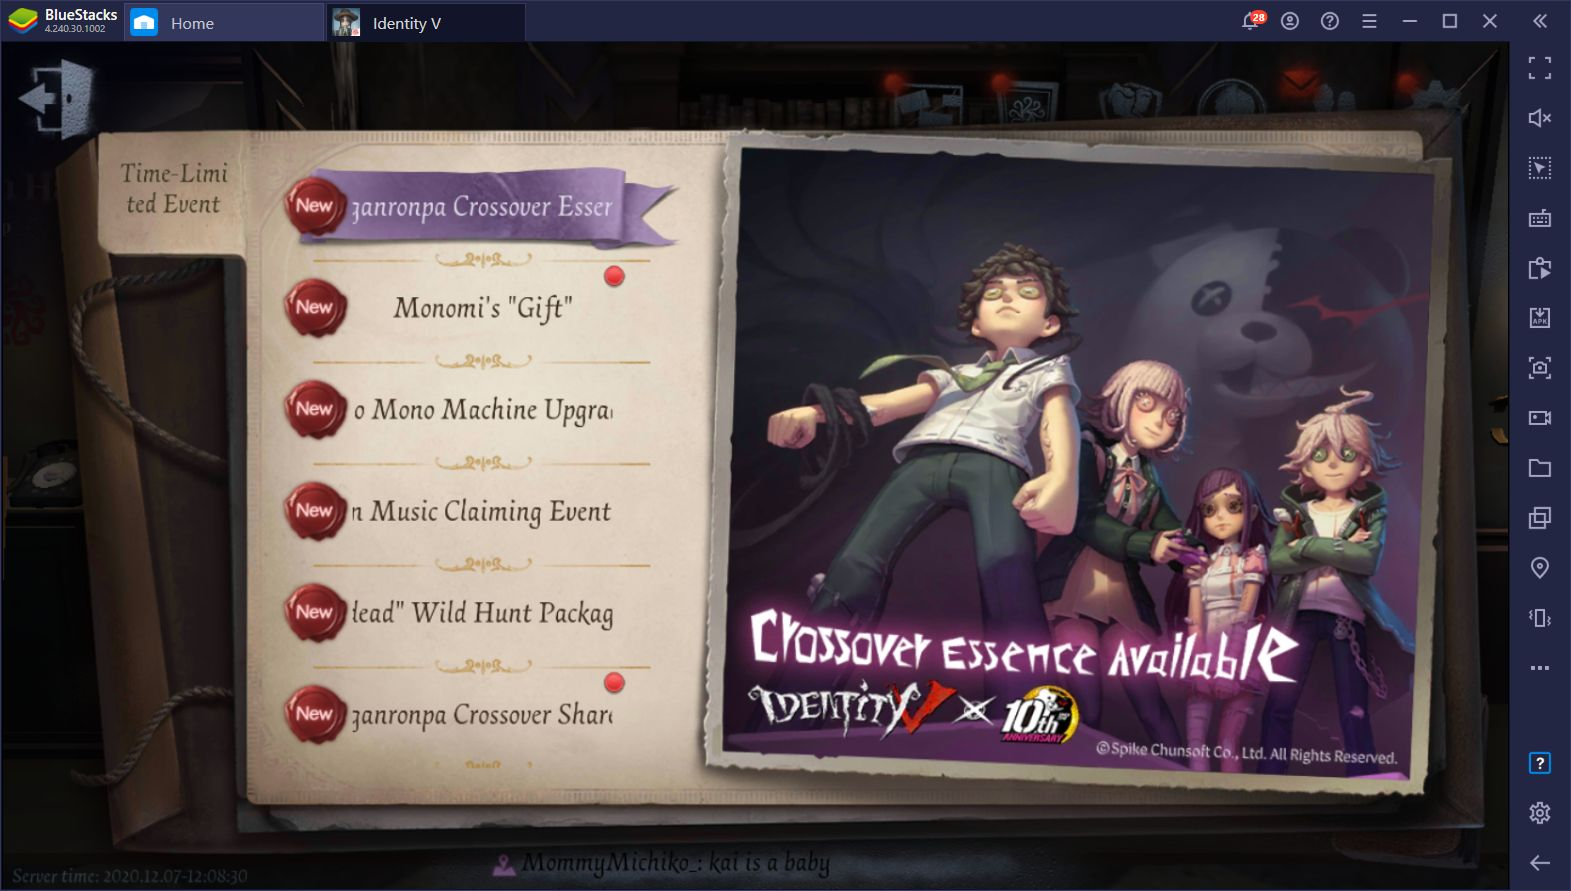 Identity V is Getting Another Danganronpa Crossover in December